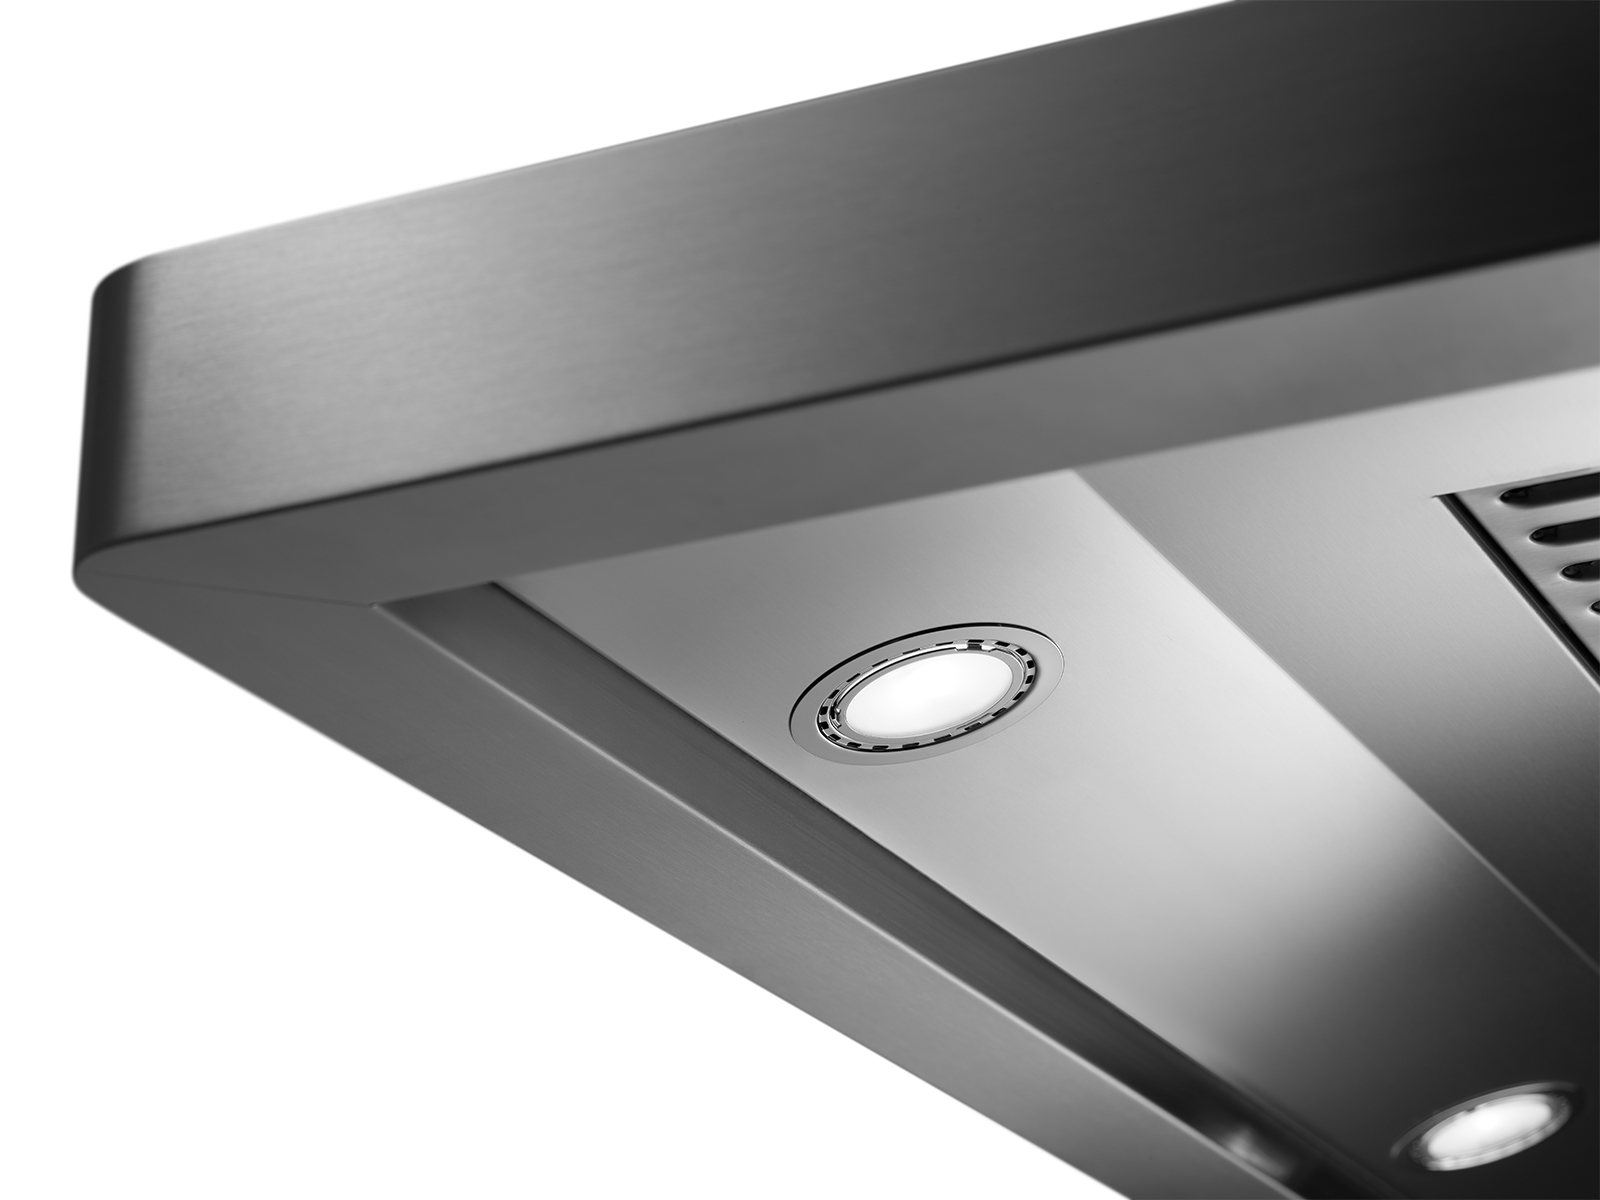 The lighting of a Dacor ventilation hood.